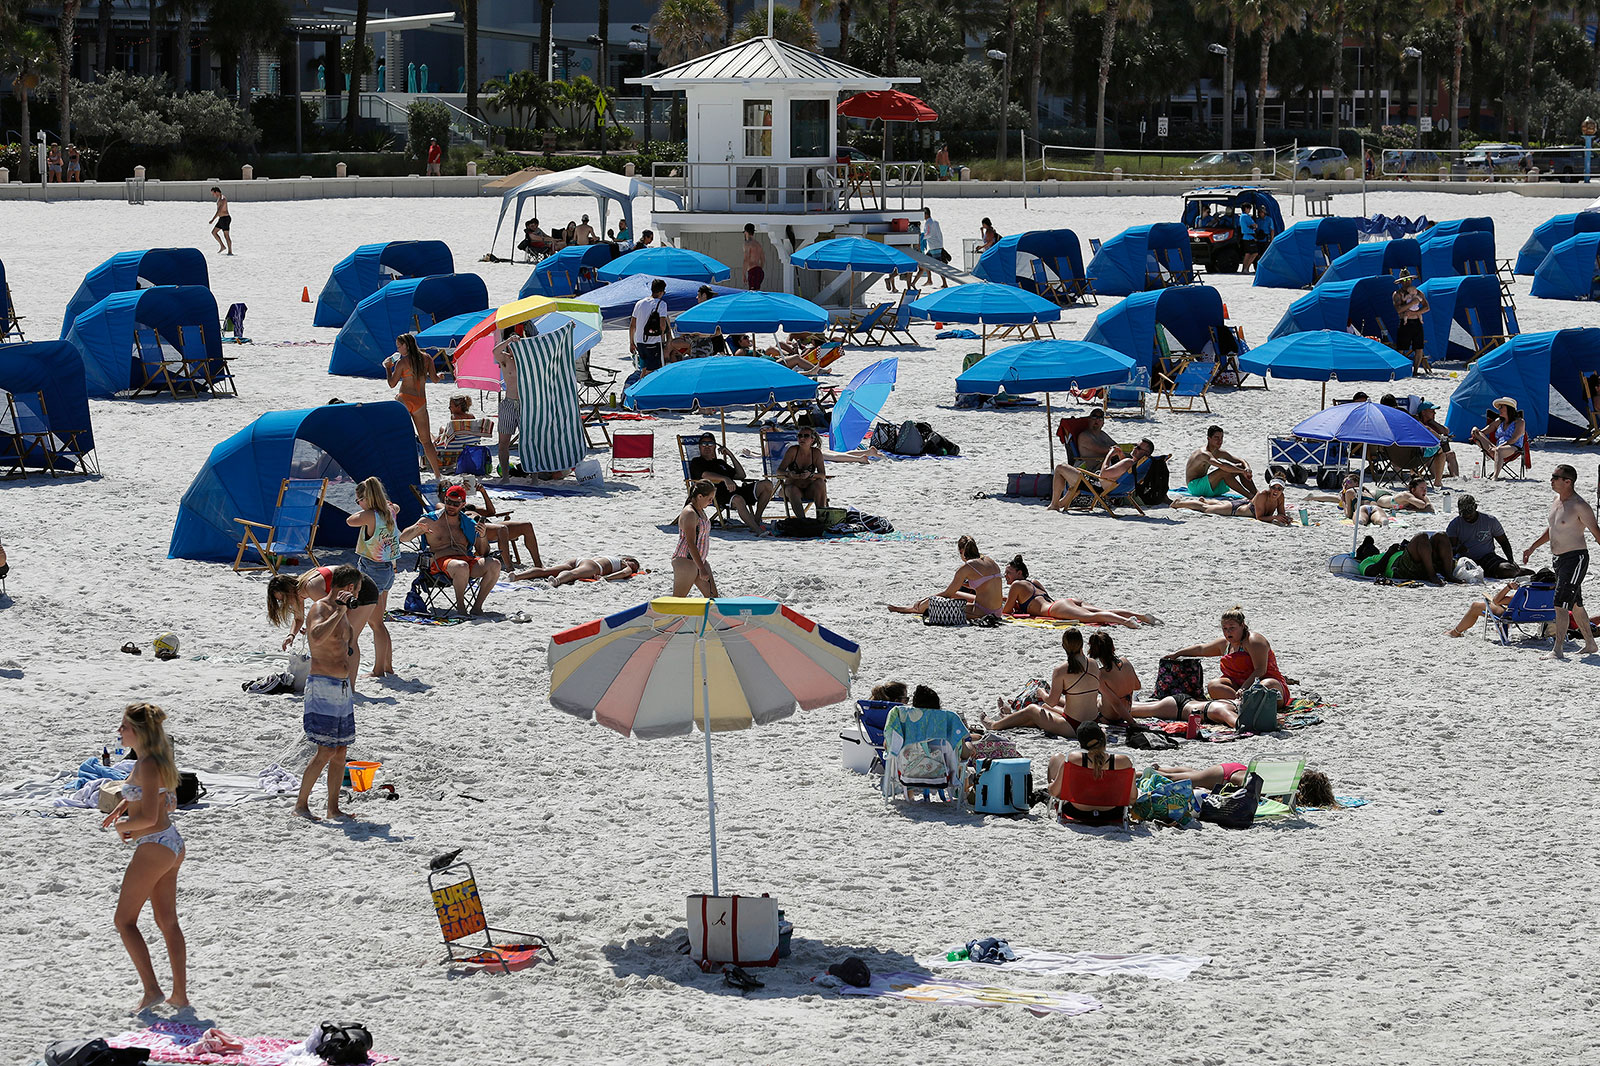 People visit a beach in Clearwater Beach, Florida, on March 18.